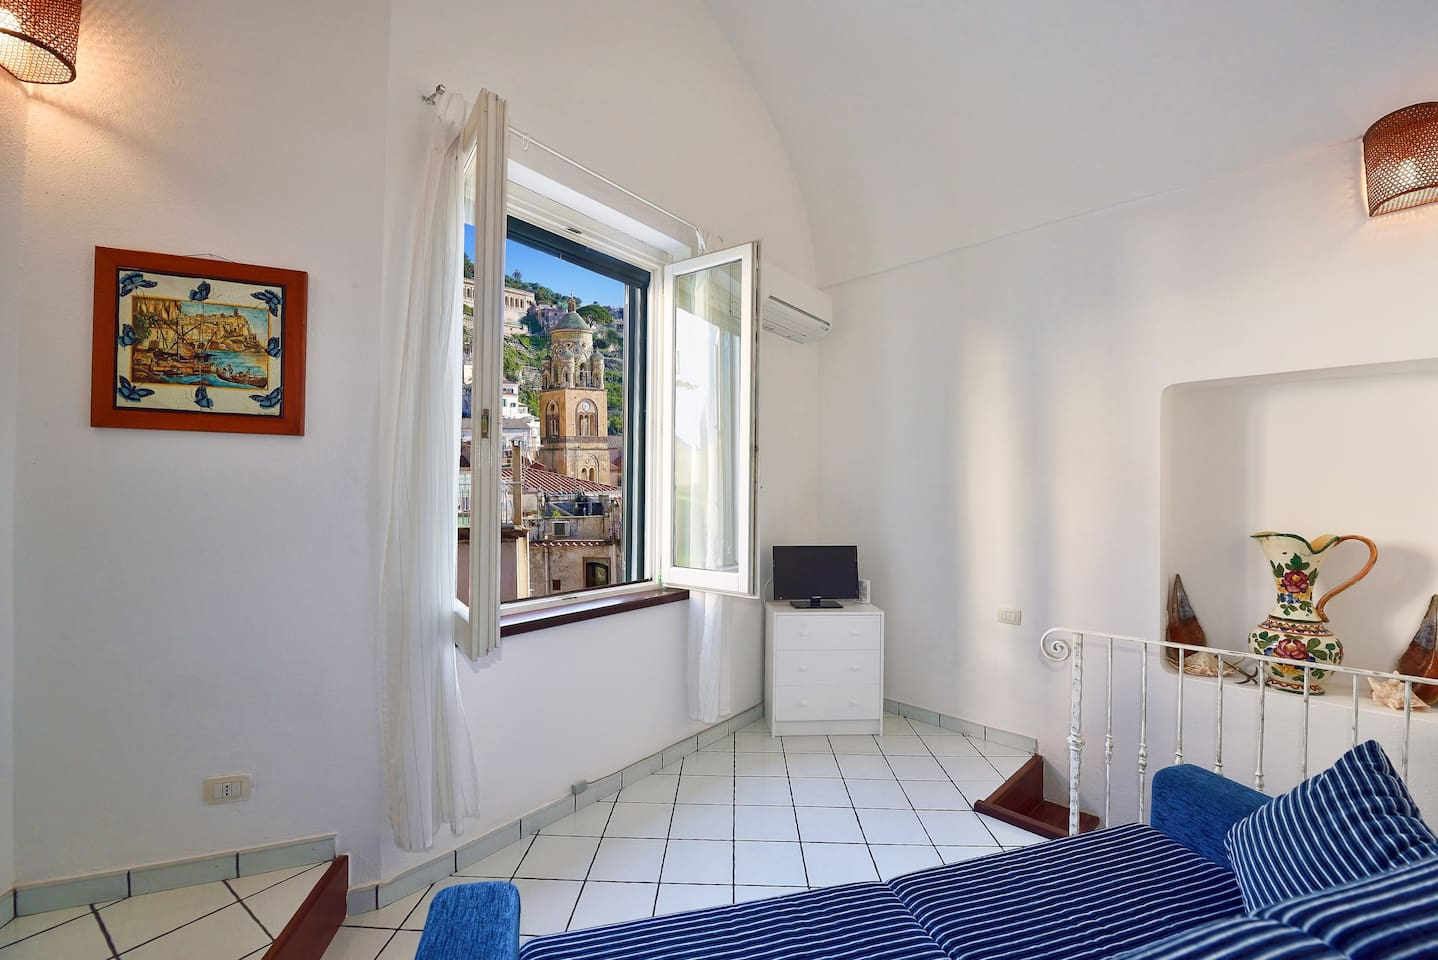 Livingroom with view of Amalfi